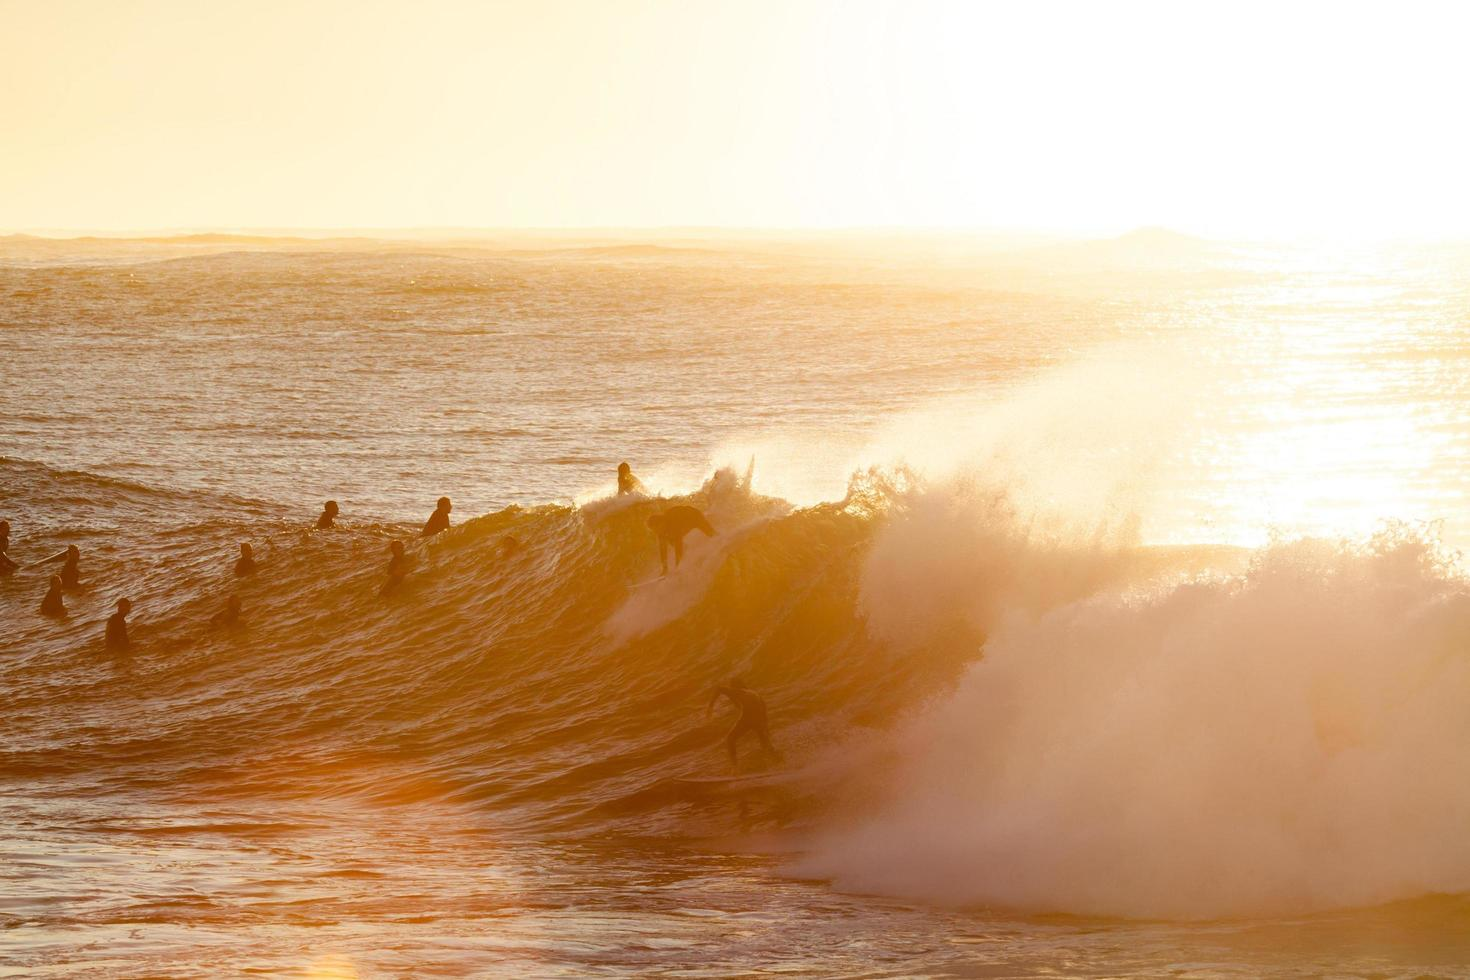 Silhouettes of people surfing at golden hour photo